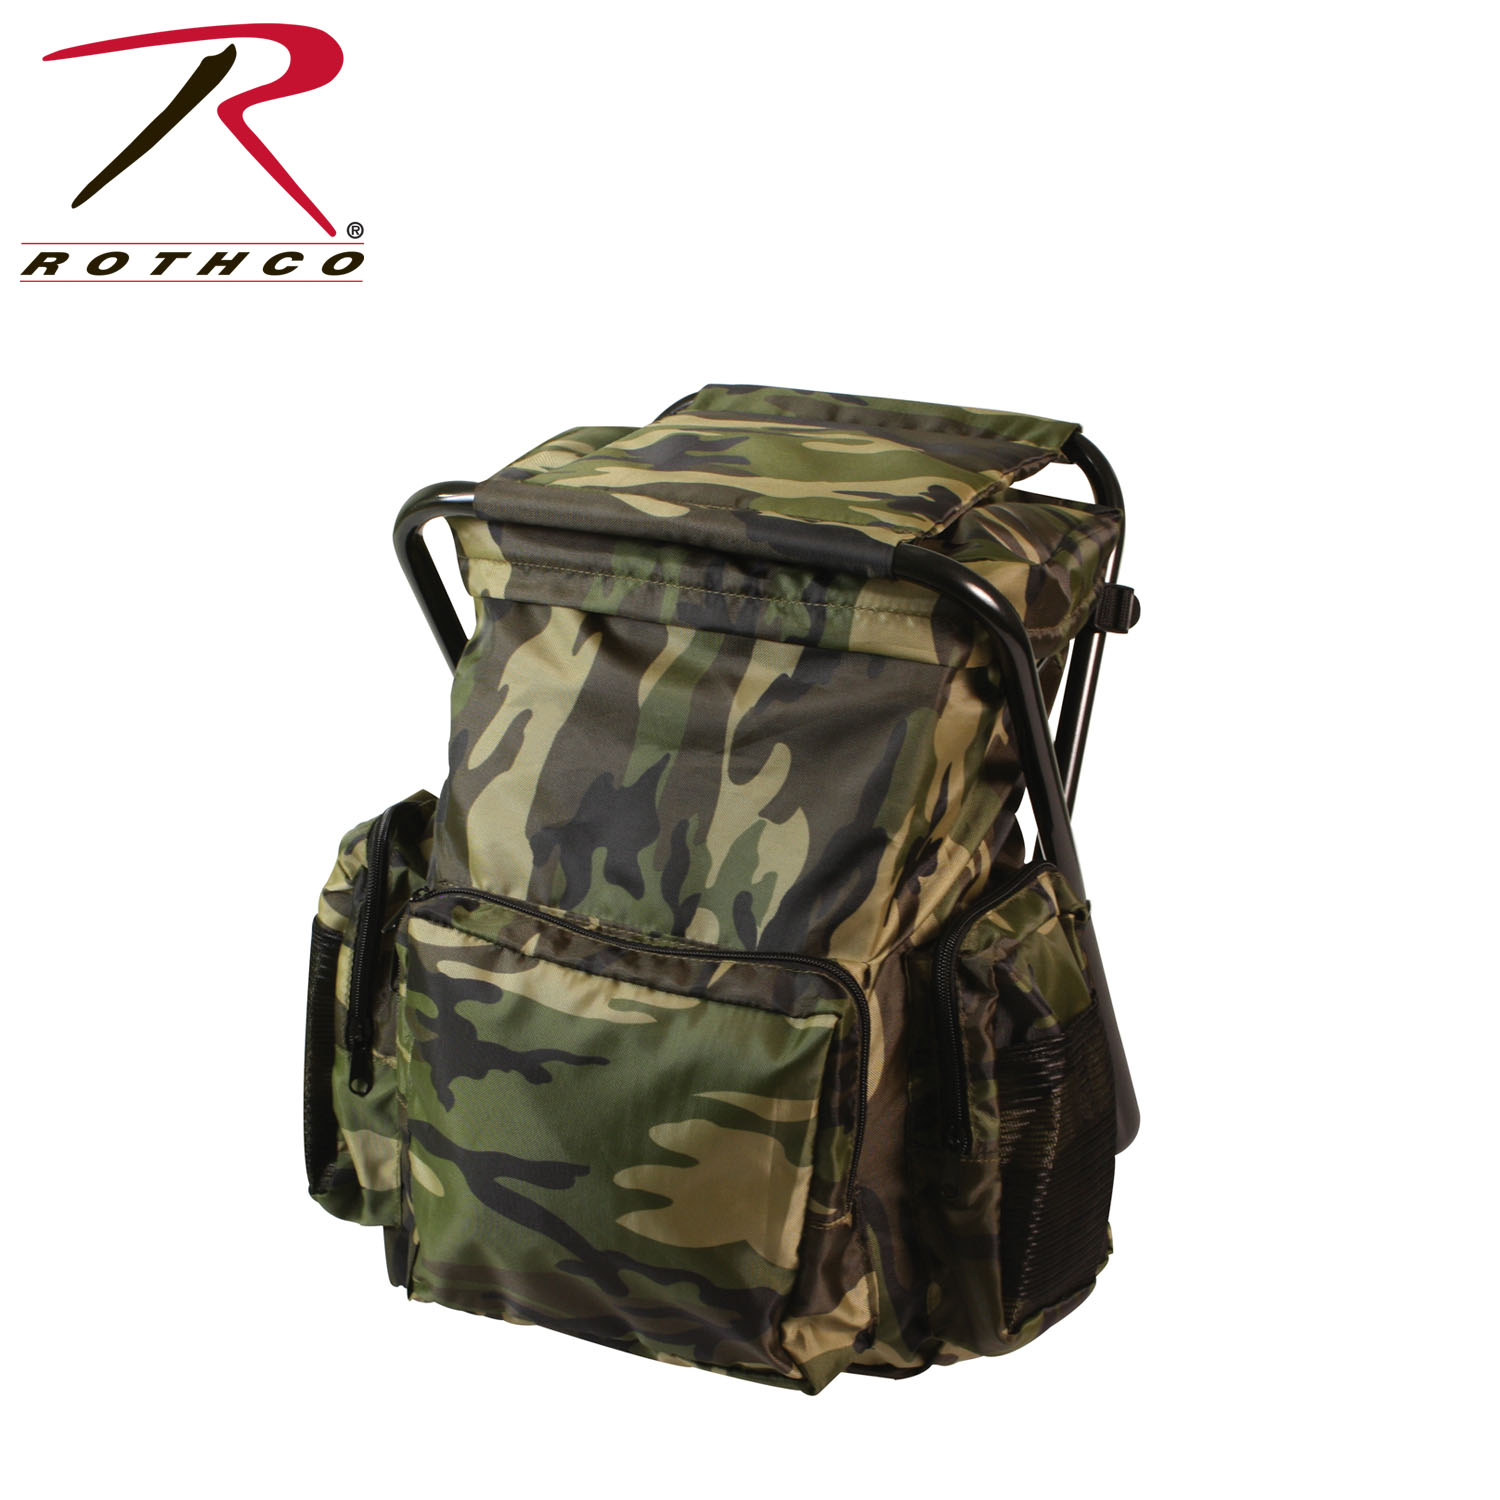 Rothco 4568 4548 Backpack And Stool Combo Pack Ebay